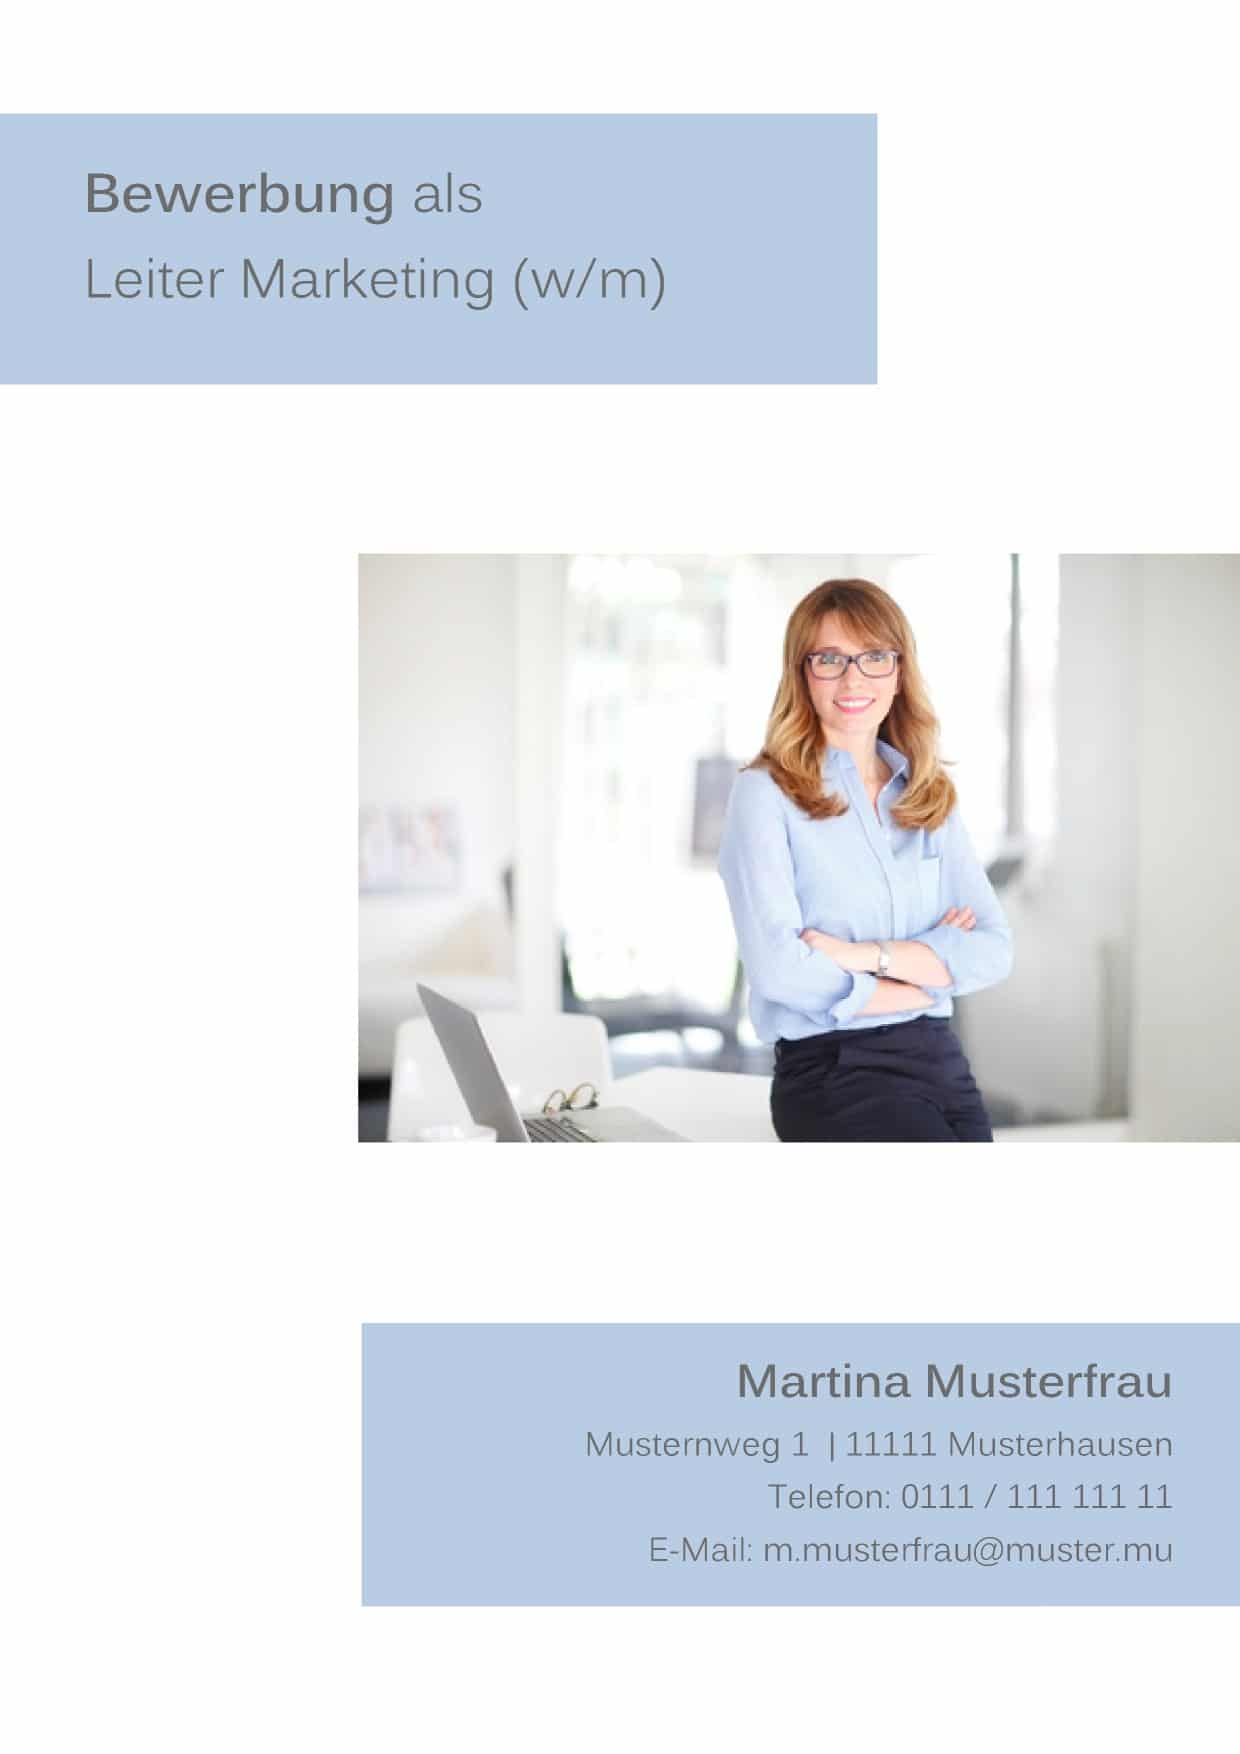 Deckblatt 33 - Marketing / Marketing Manager / Marketing Expert / Leiterin / Projektleiterin - Bewerbungsdeckblatt Muster